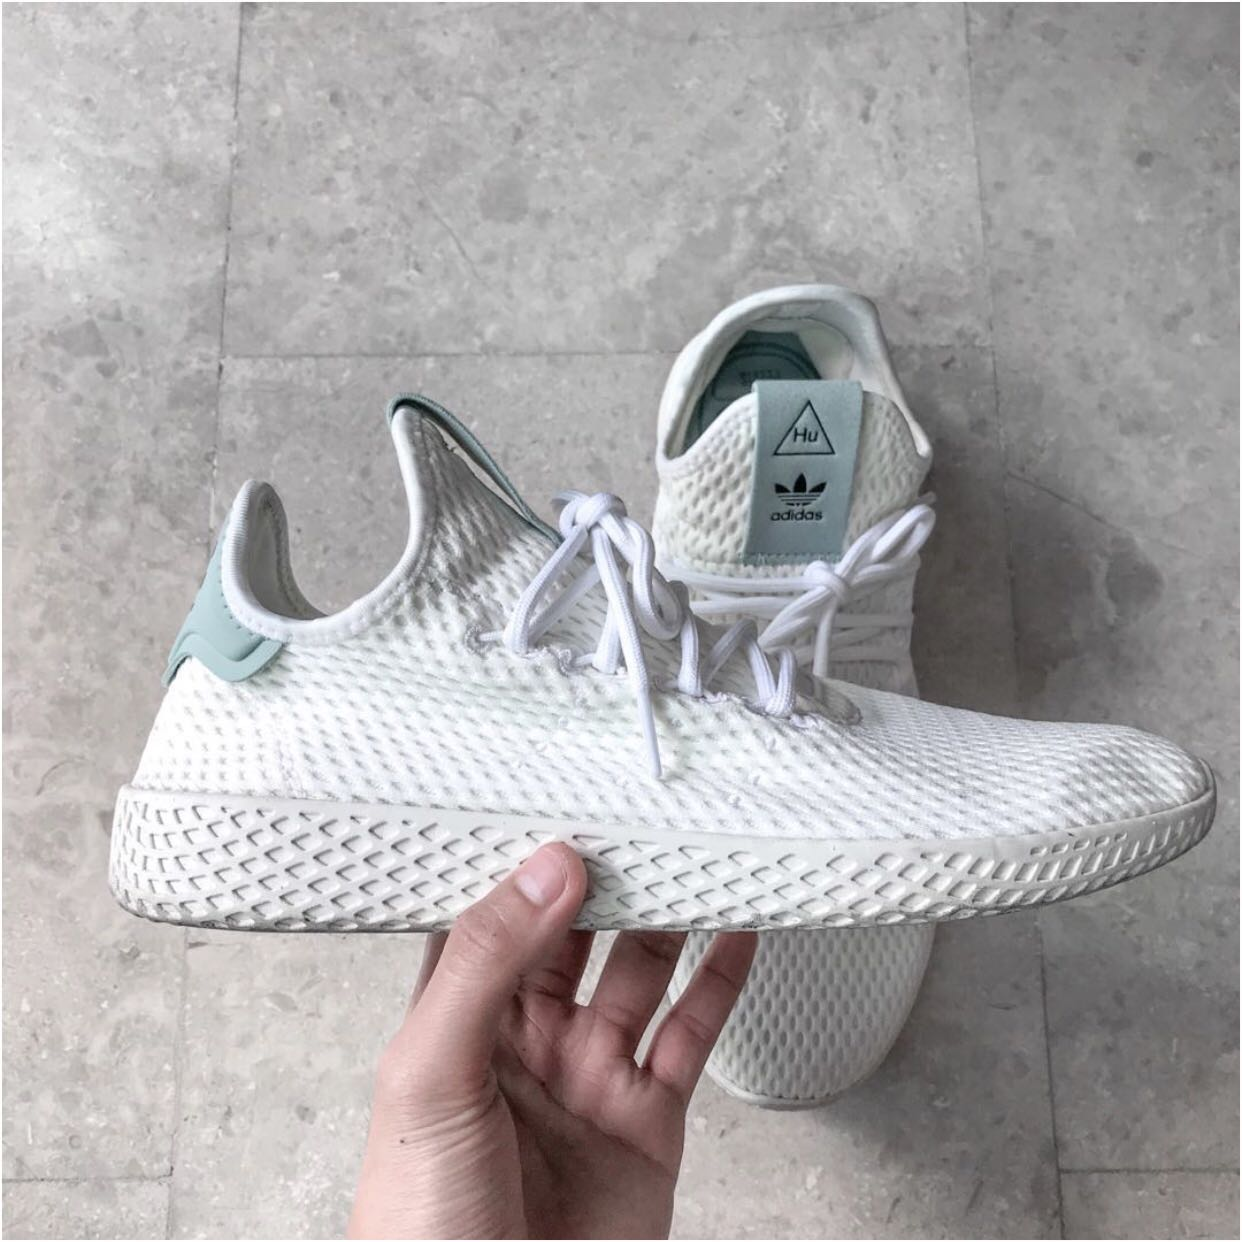 c2cdf45a7356 Adidas Originals x Pharrell Williams Tennis Hu Tactile Green